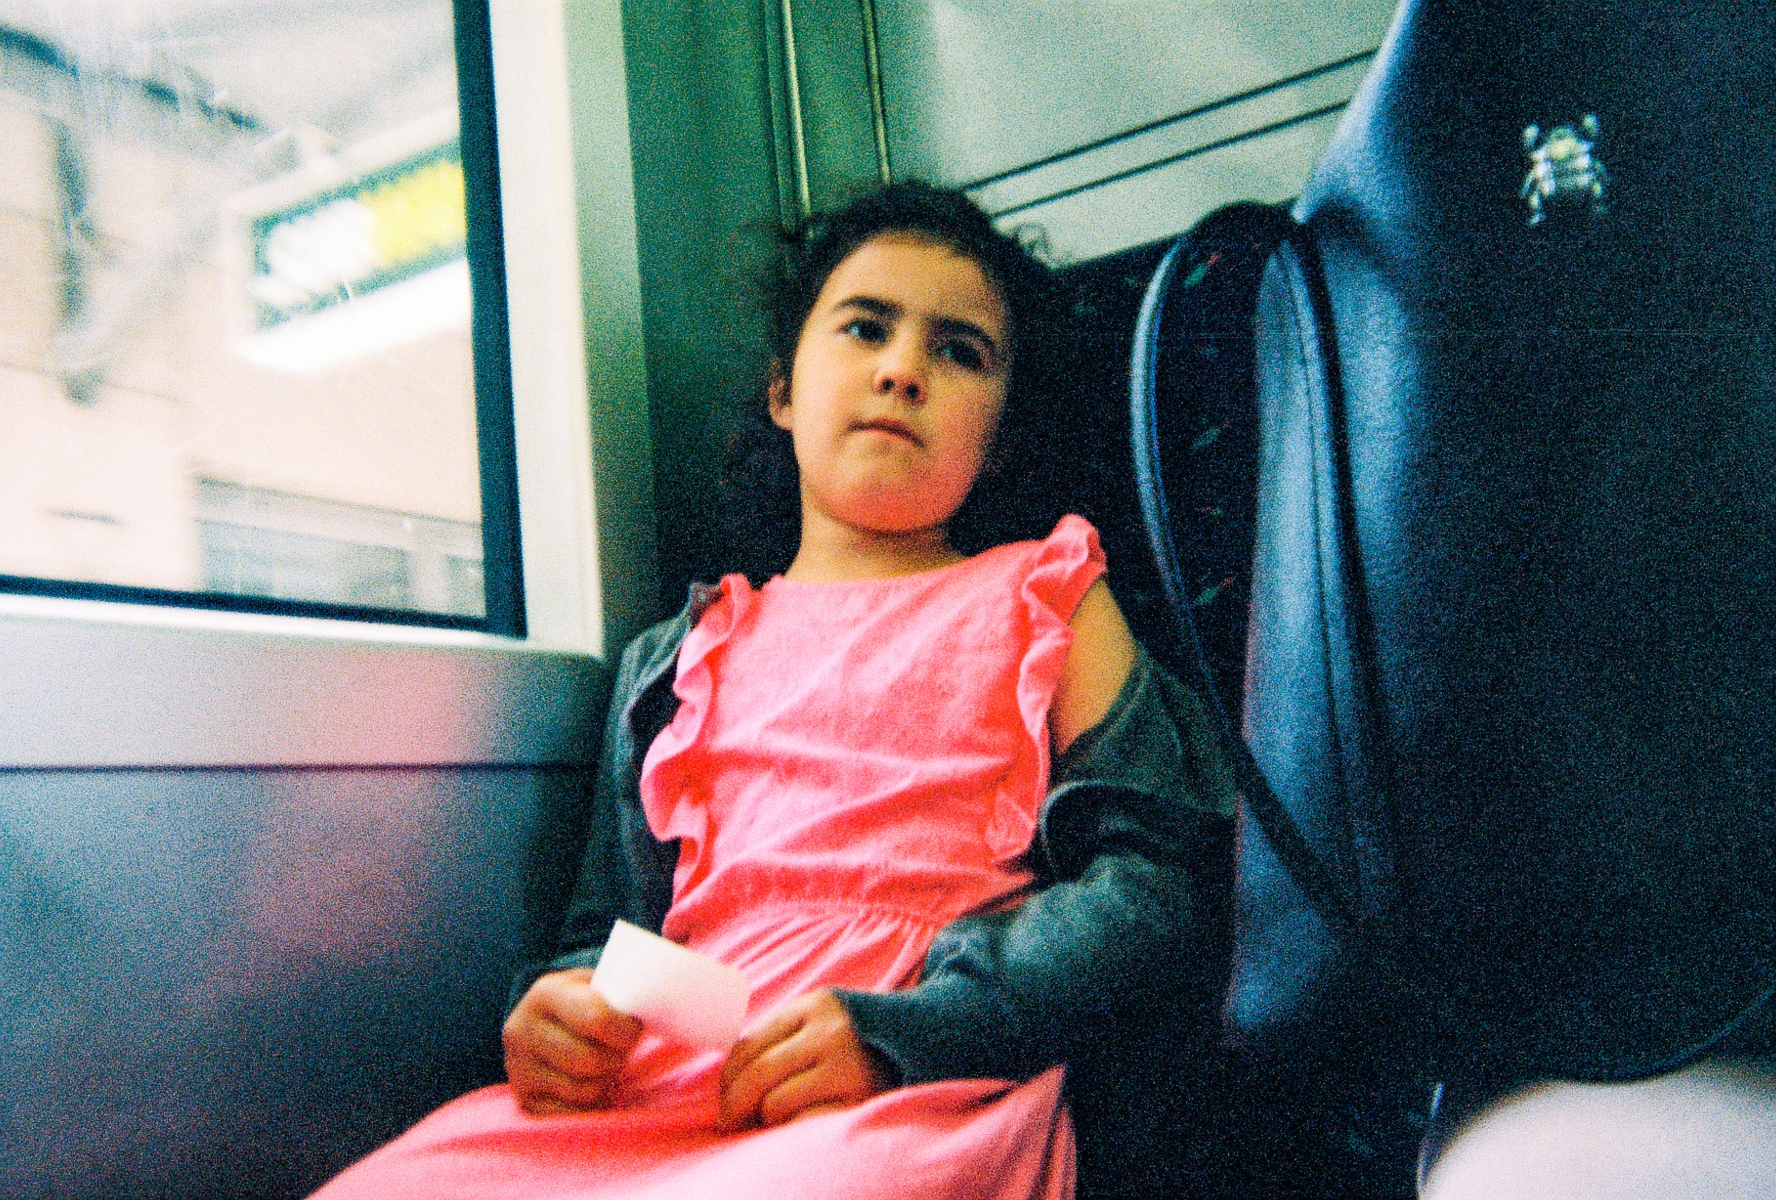 girl-on-the-train_001